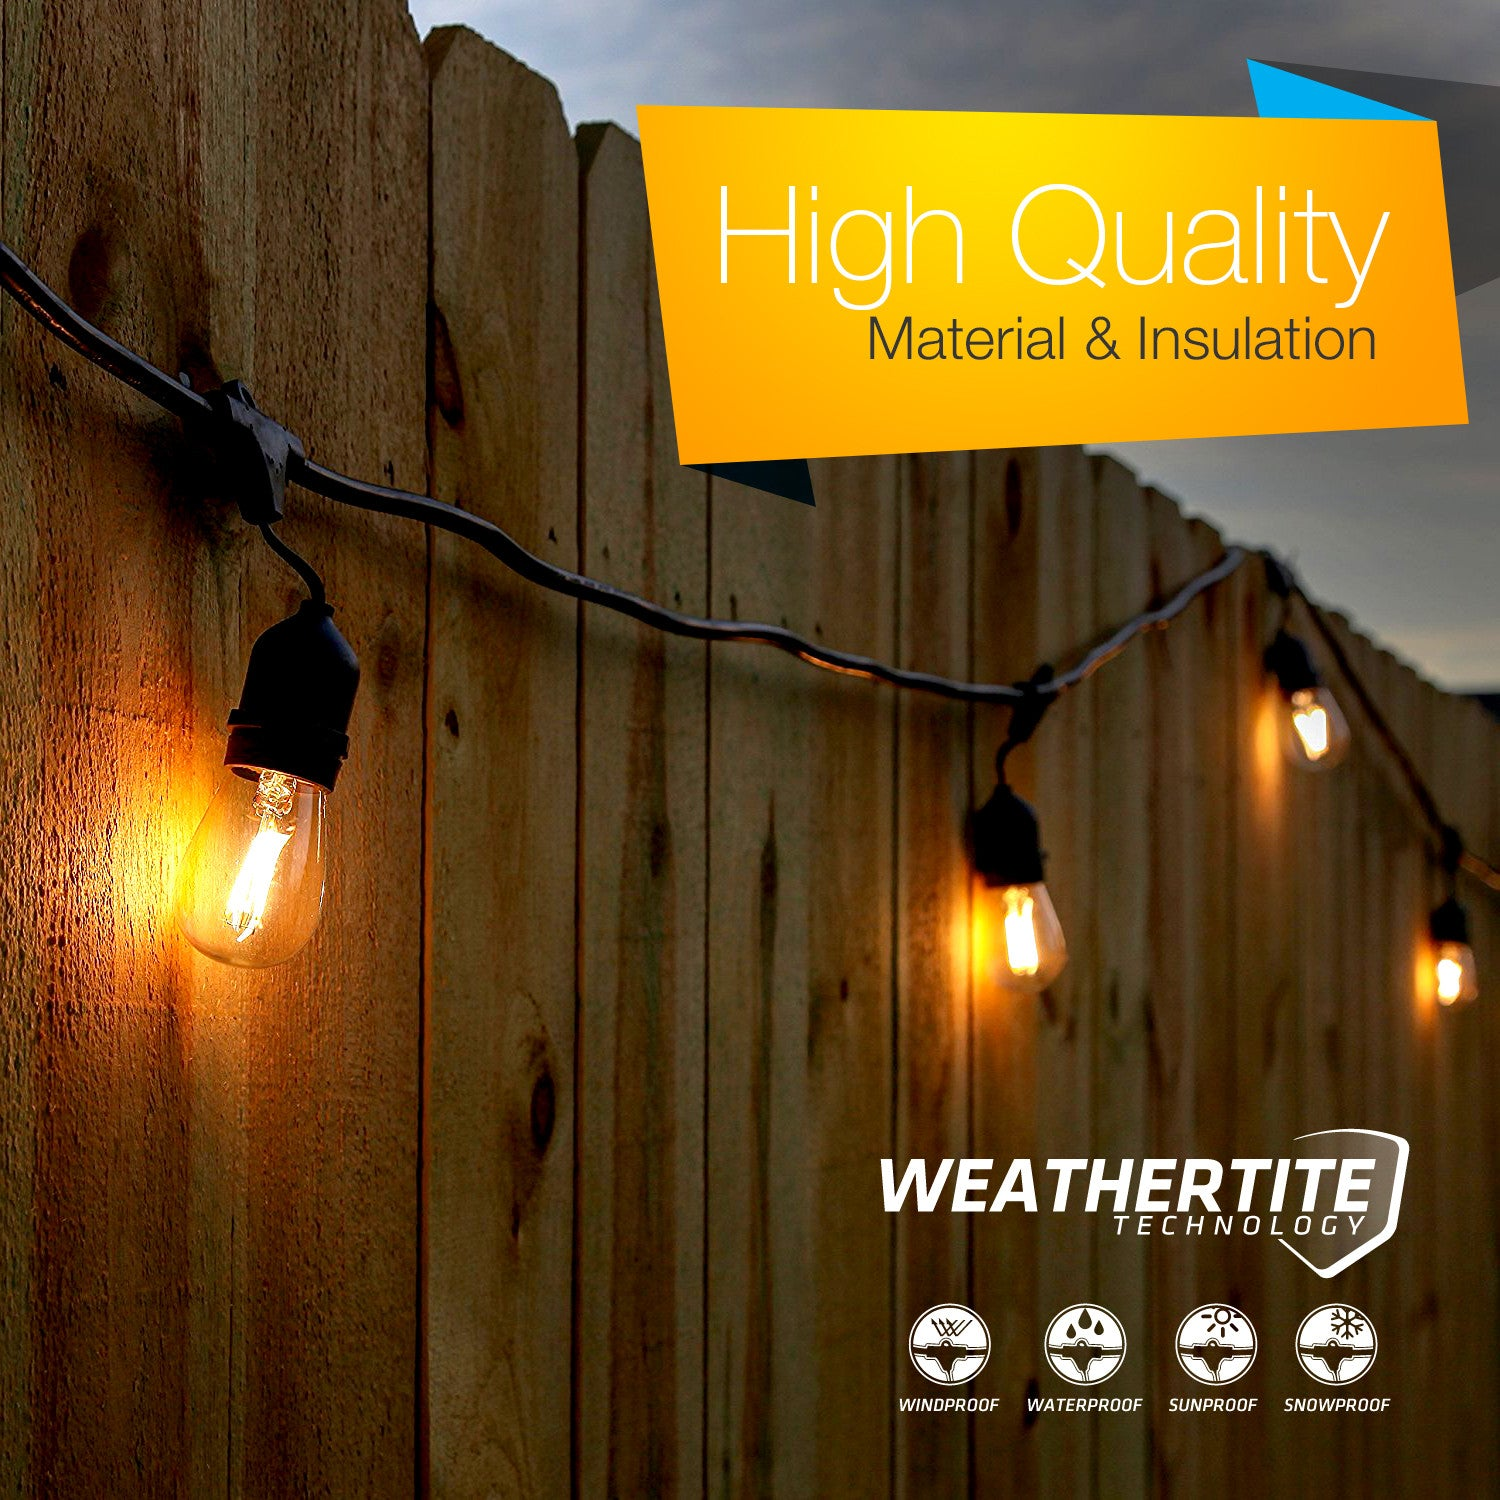 Brightech store ambience pro led outdoor weatherproof commercial brightech store ambience pro led outdoor weatherproof commercial grade string lights weathertite technology 2 watt led bulbs included 48 foot string aloadofball Images